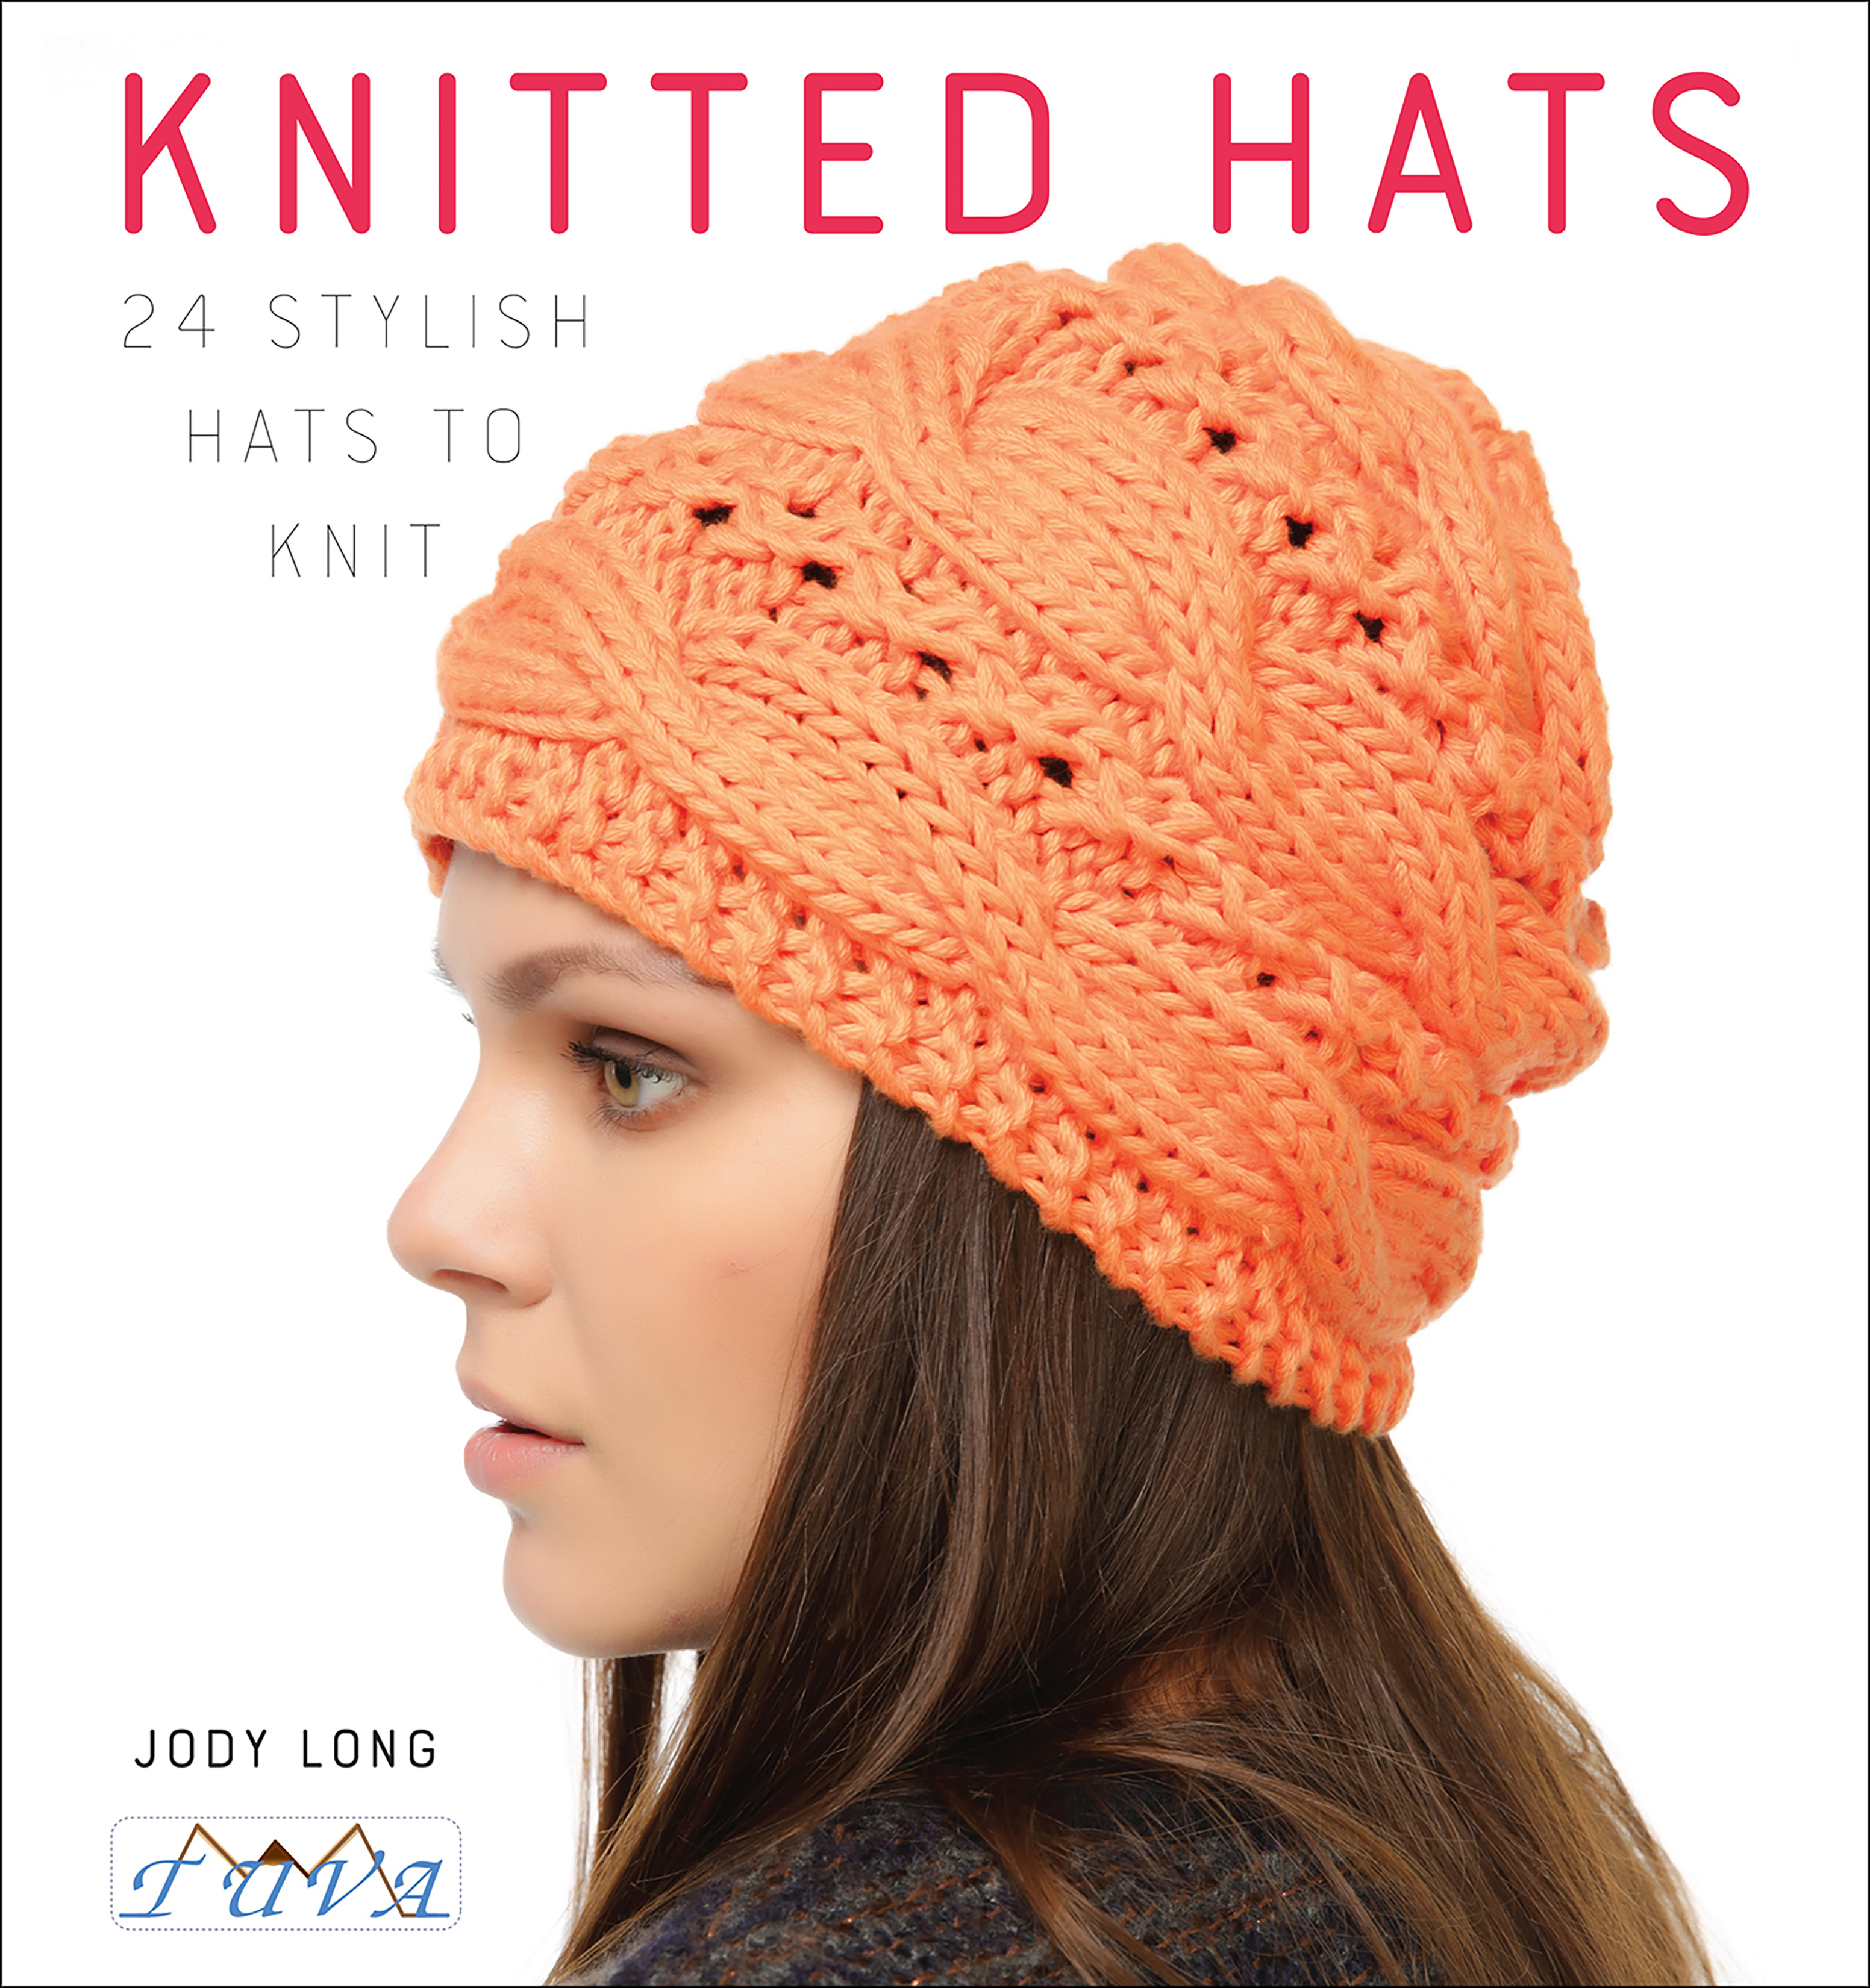 Tuva Publishing-Knitted Hats - image 1 of 1